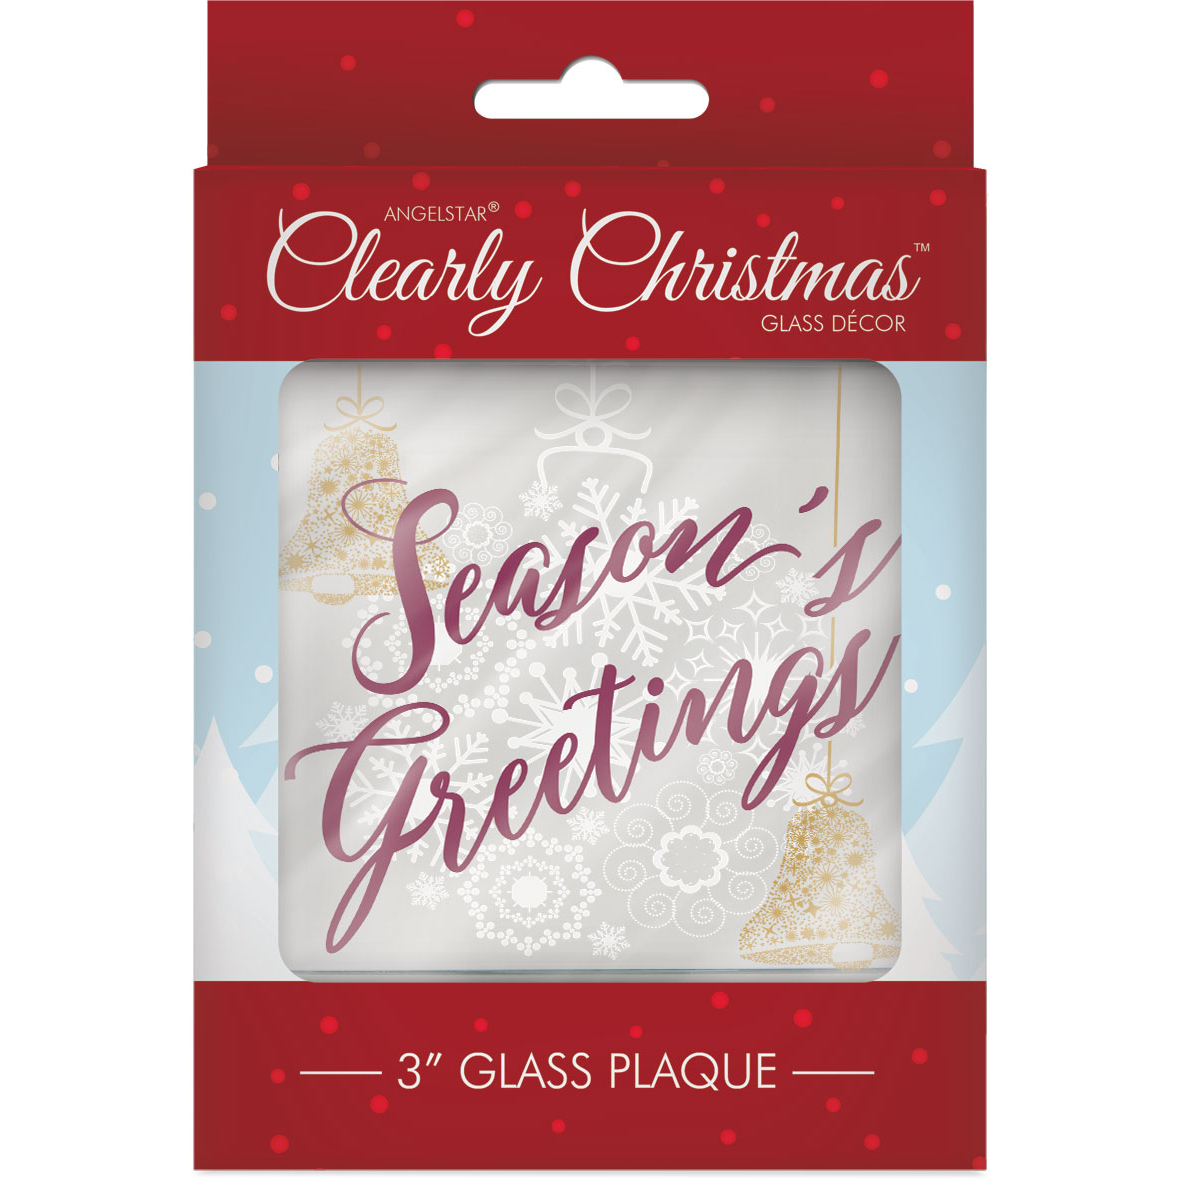 Clearly Christmas Glass Decor Plaque Seasons Greetings